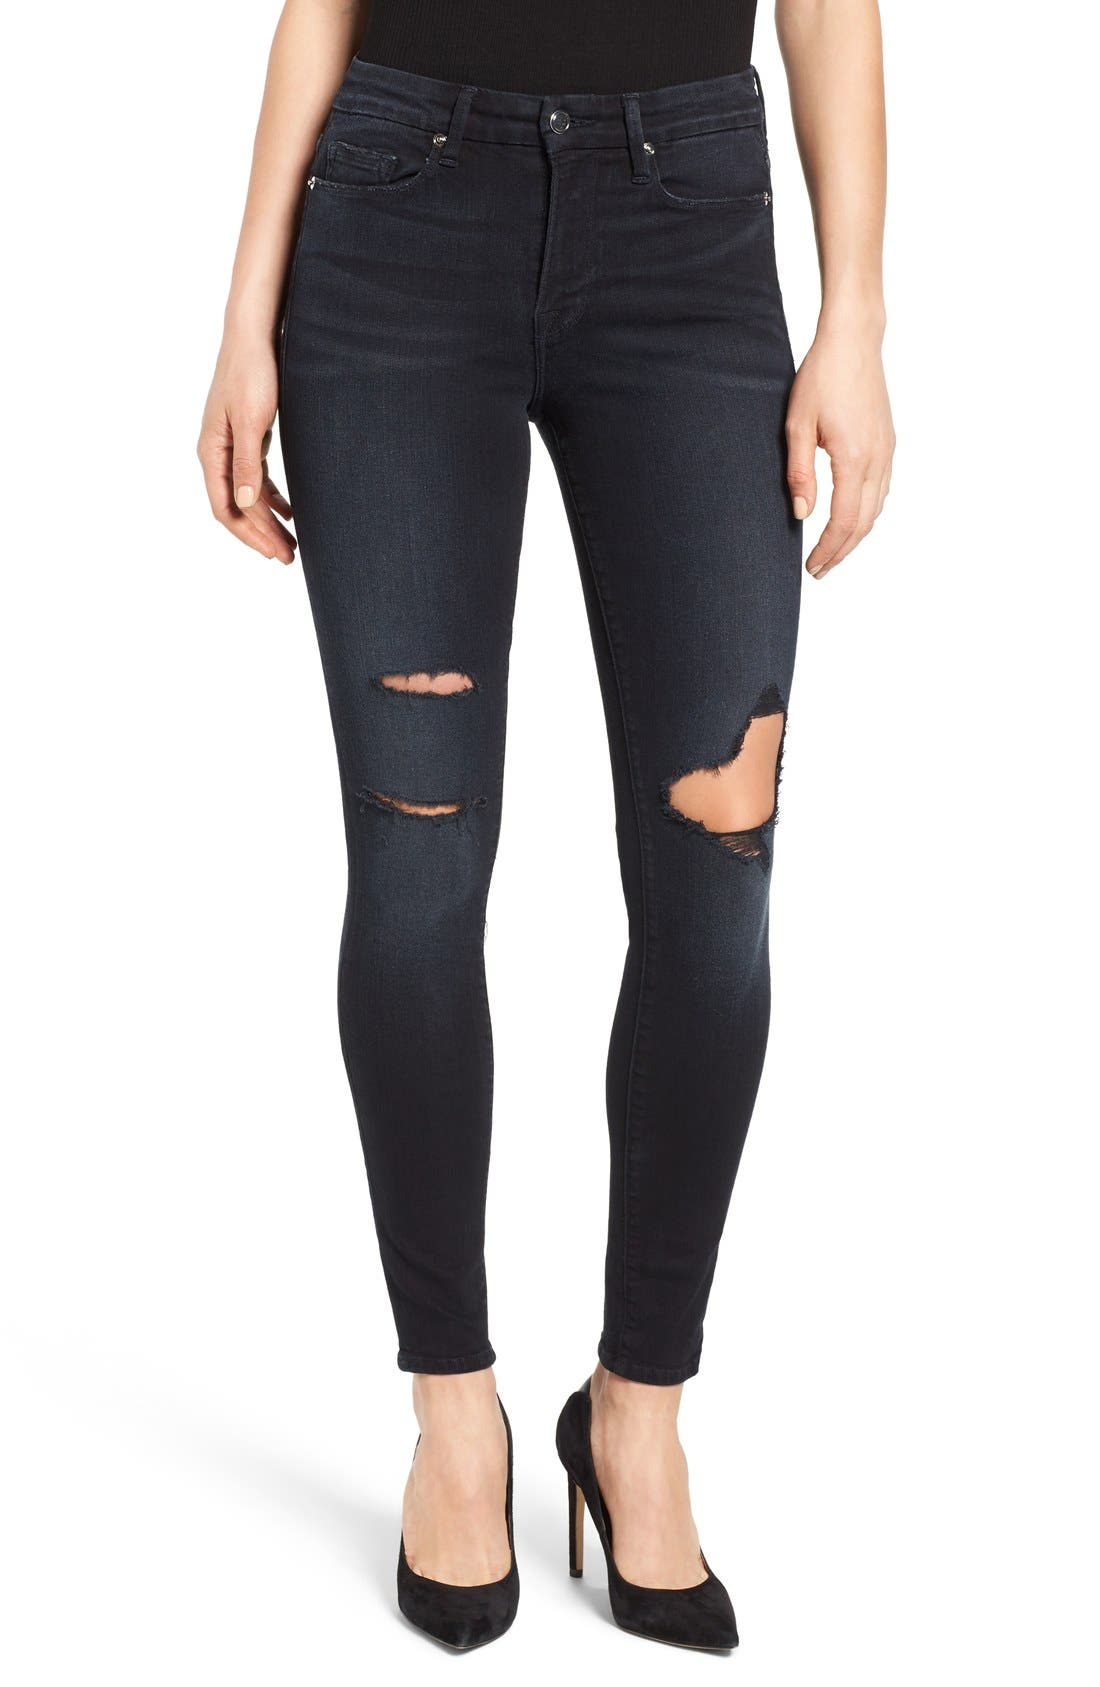 Good Legs High Rise Ripped Skinny Jeans,                         Main,                         color, Blue 001 Washed Black